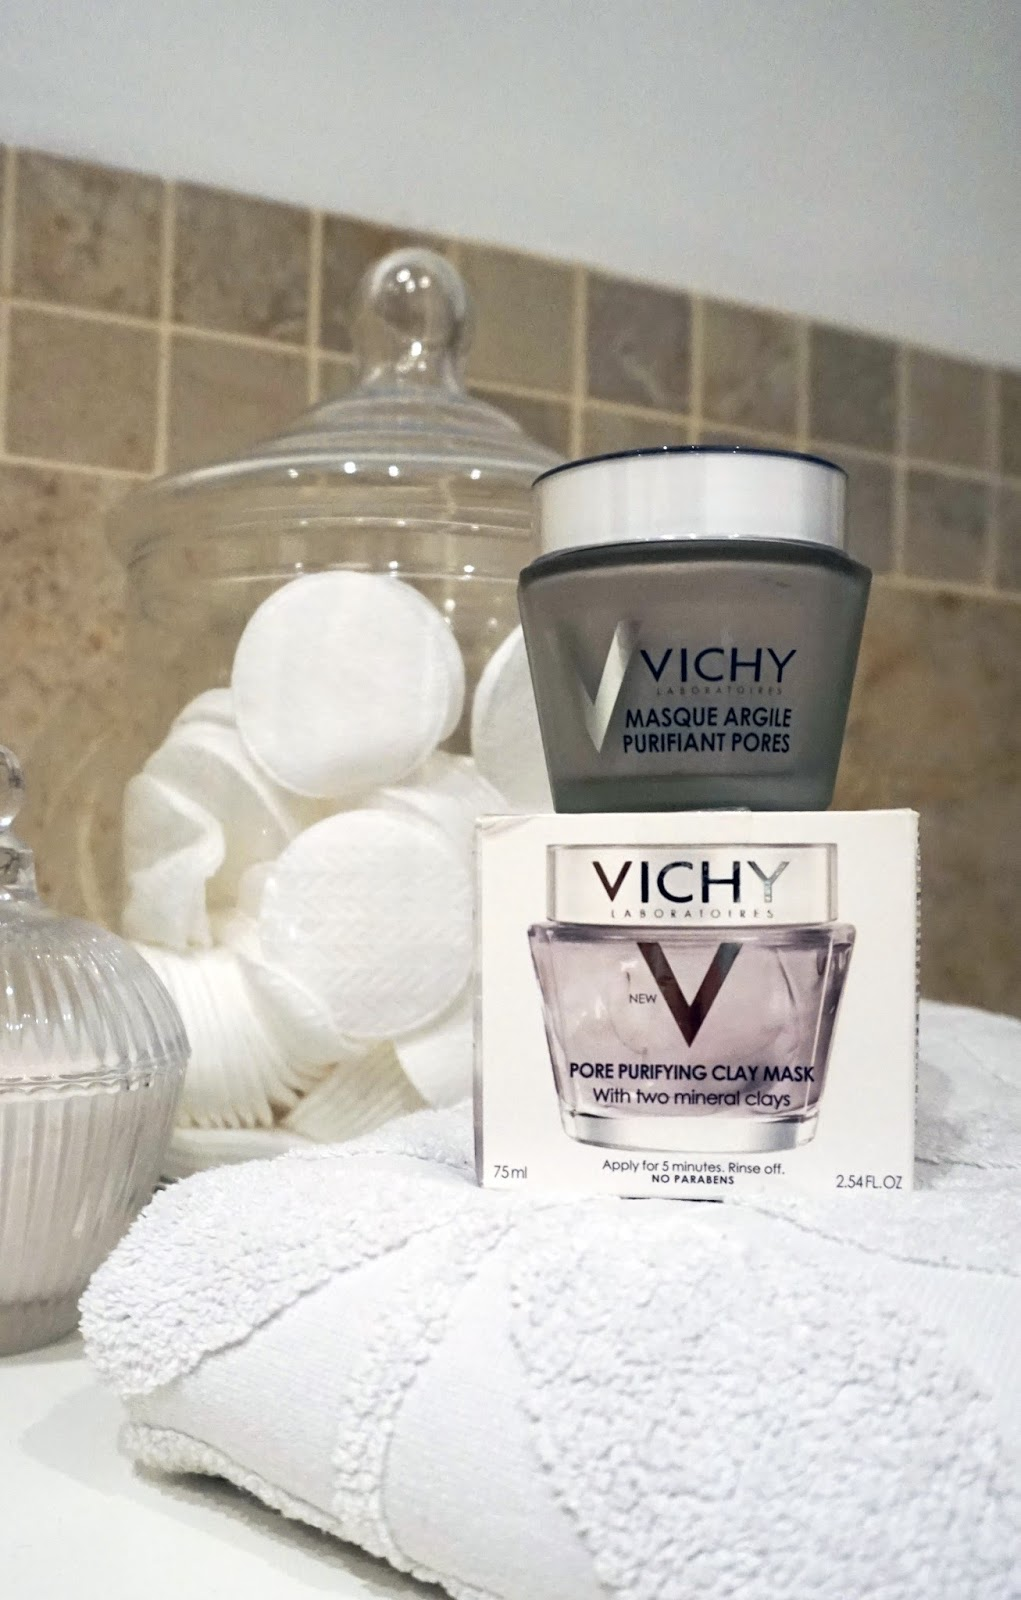 pore purifying clay mask vichy review